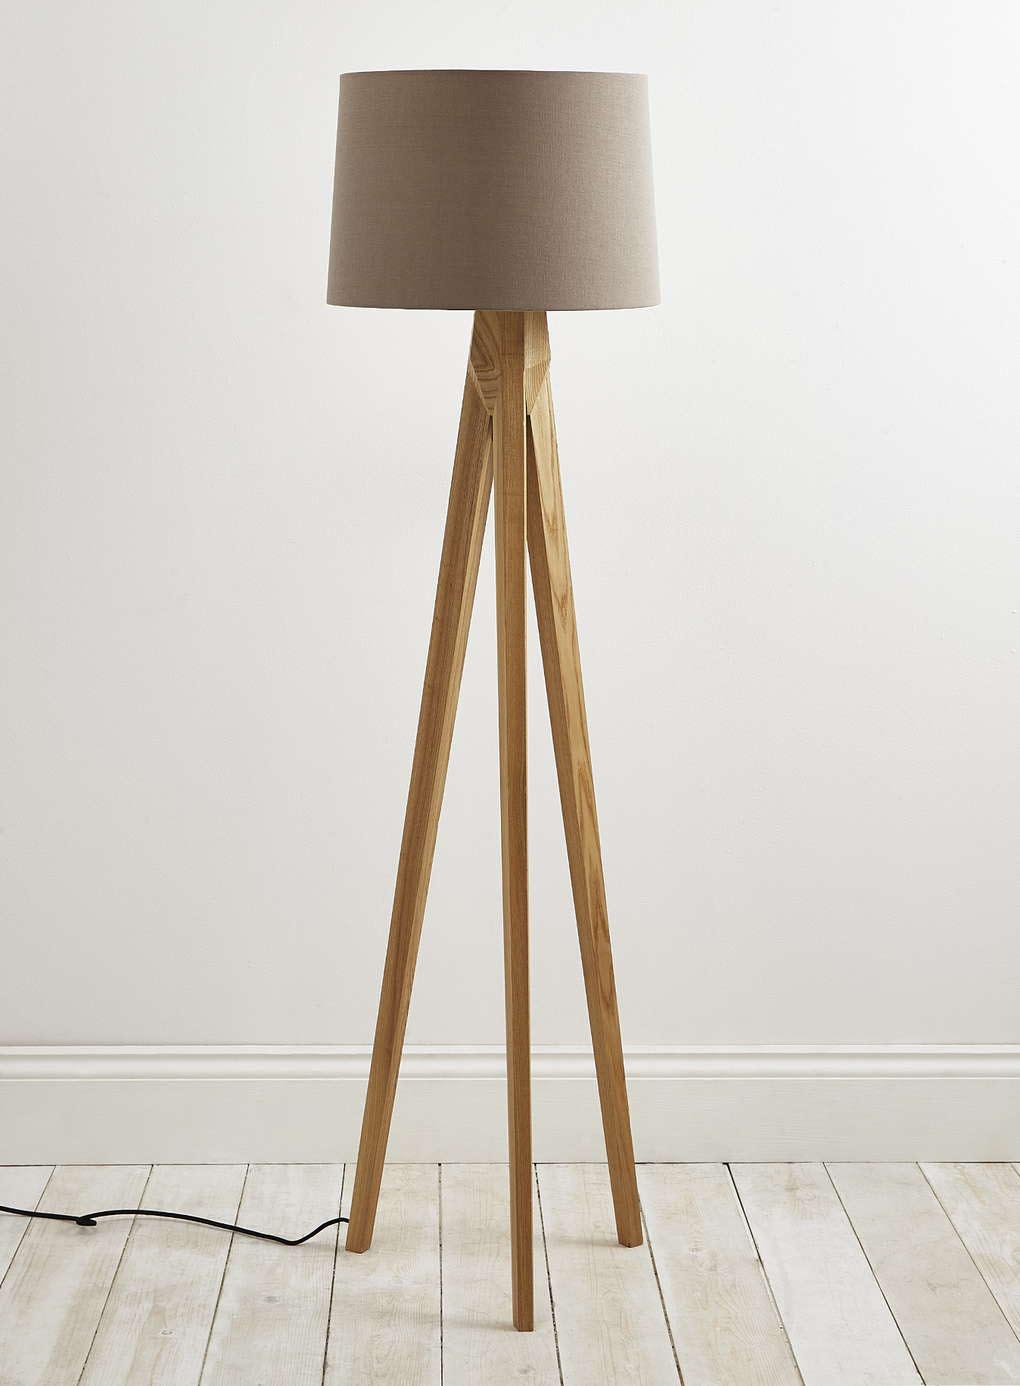 Tripod floor lamp wooden legs light fixtures design ideas tripod floor lamp wooden legs solutioingenieria